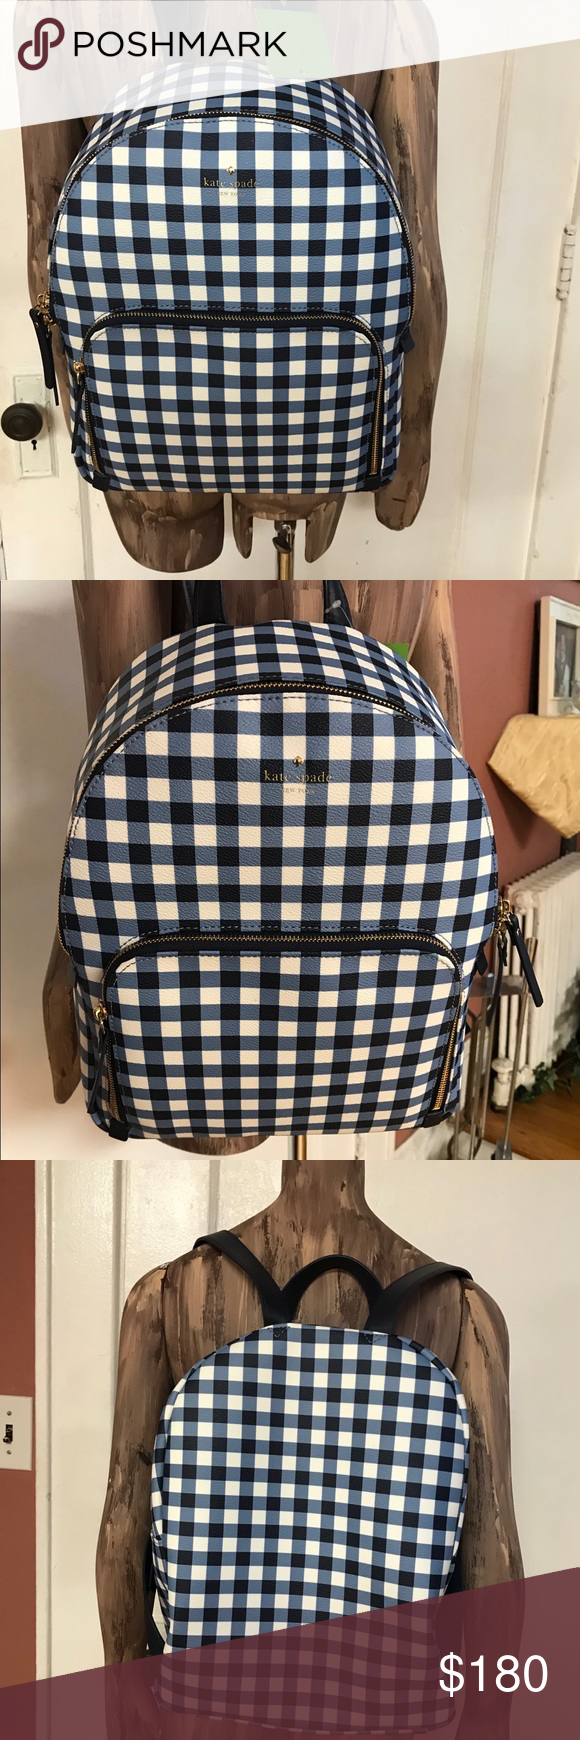 Red flannel backpack  Kate Spade New York Womenus Leather backpack Boutique  Gingham